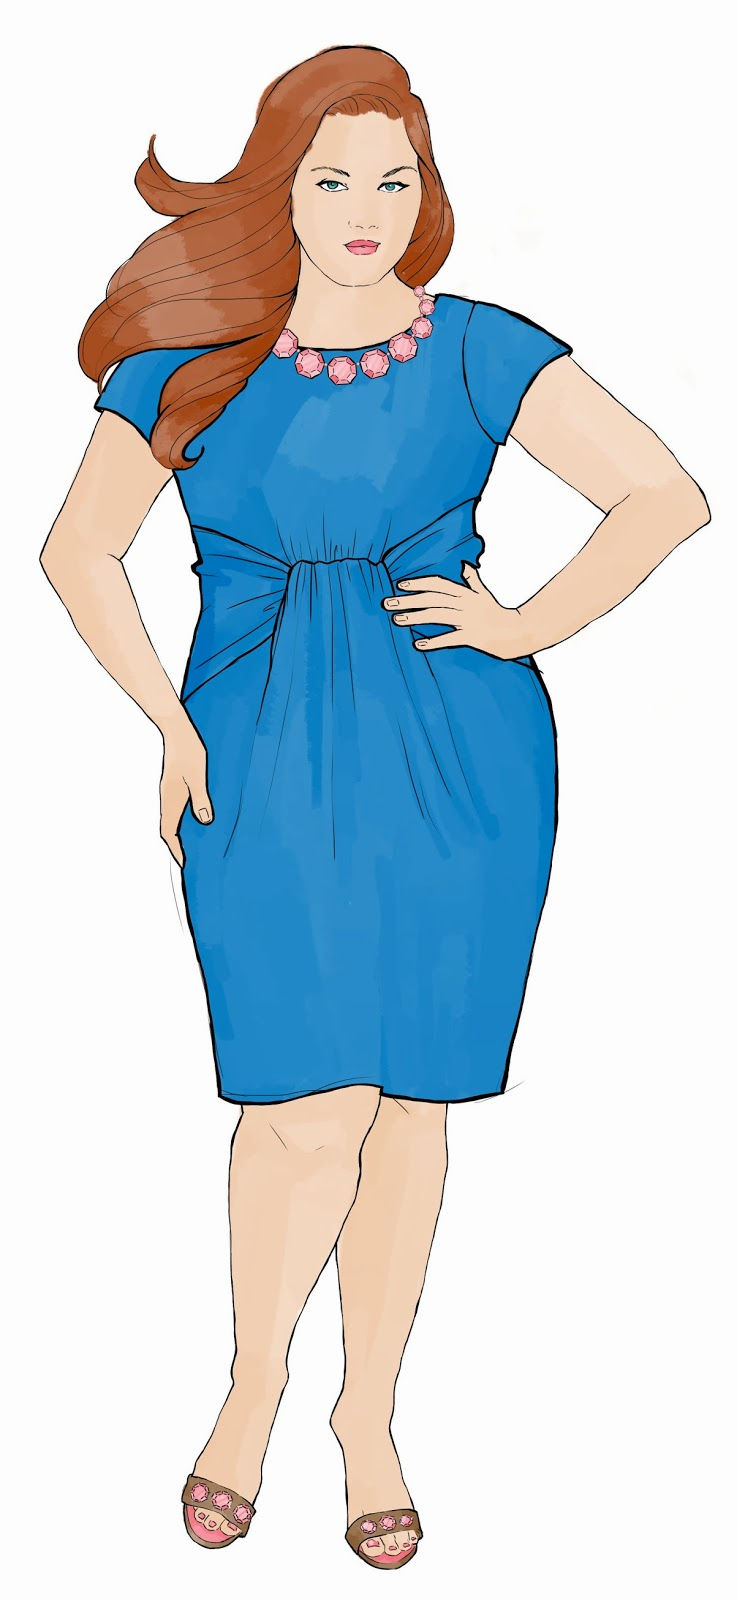 plus-size-fashion-illustration, plus-sized-model-illustration, plus-size-croqui